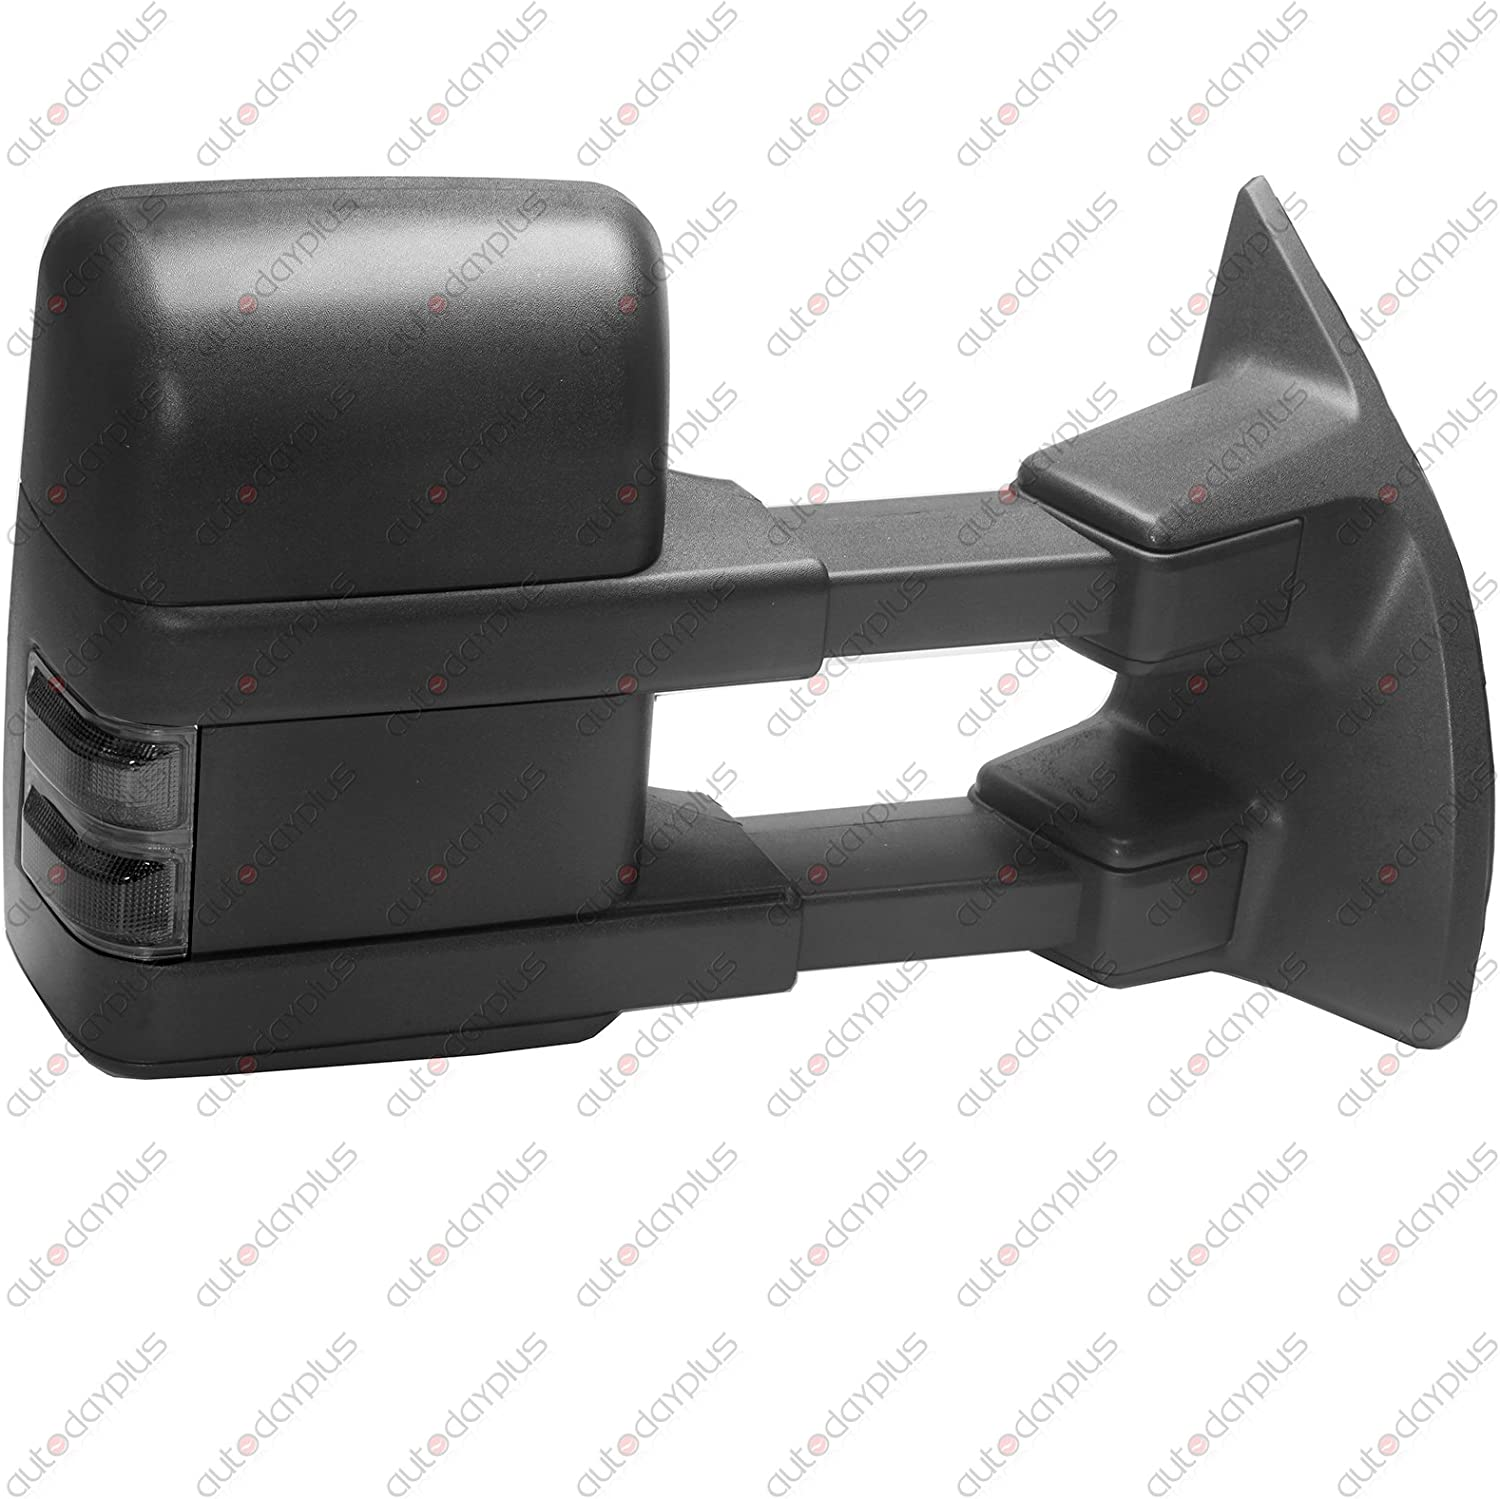 Towing Telescoping Folding Black Textured Tow Mirrors Power Heated with Smoke Signal and Dual Glass for 08-14 Ford F250 F350 F450 F550 Super Duty Left/&right Passenger/&driver Side View Mirror Pair Set